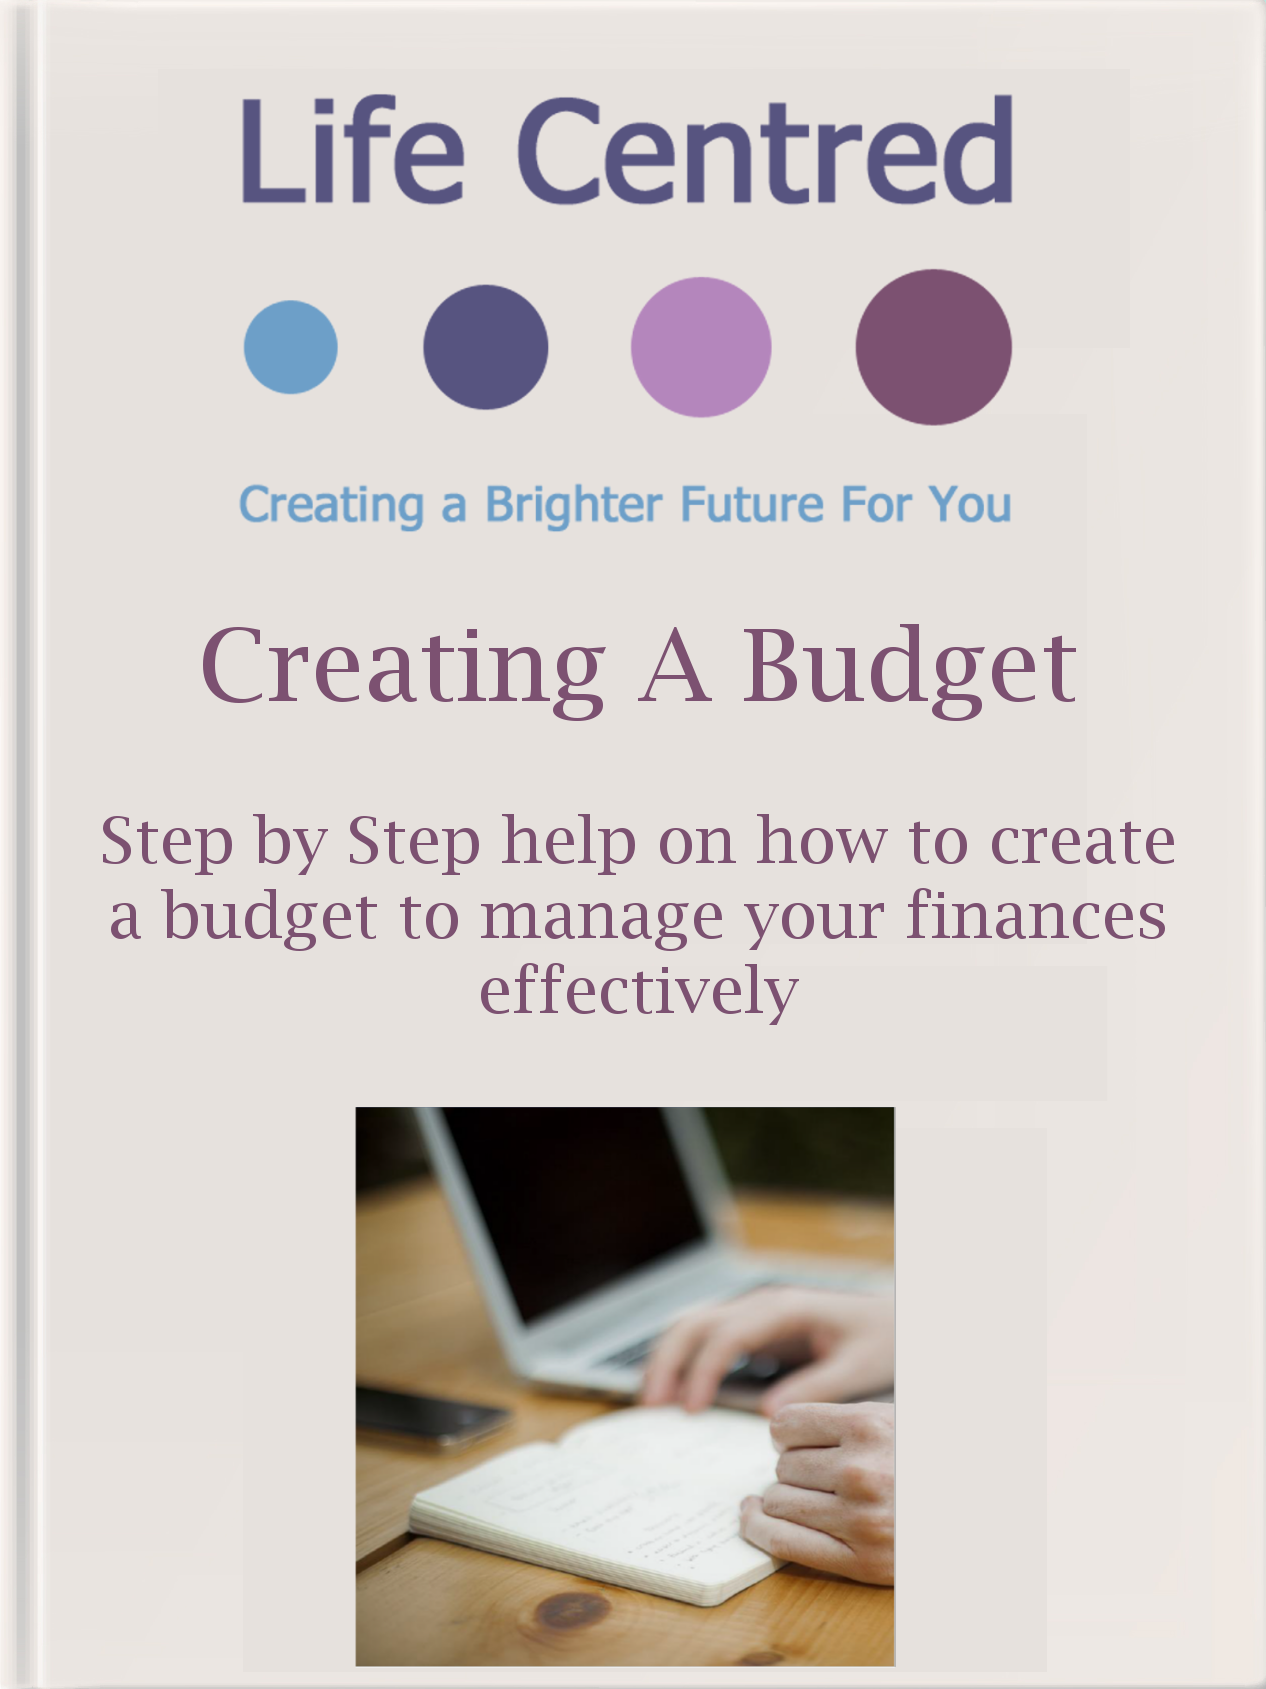 Download our Budgeting Ebook